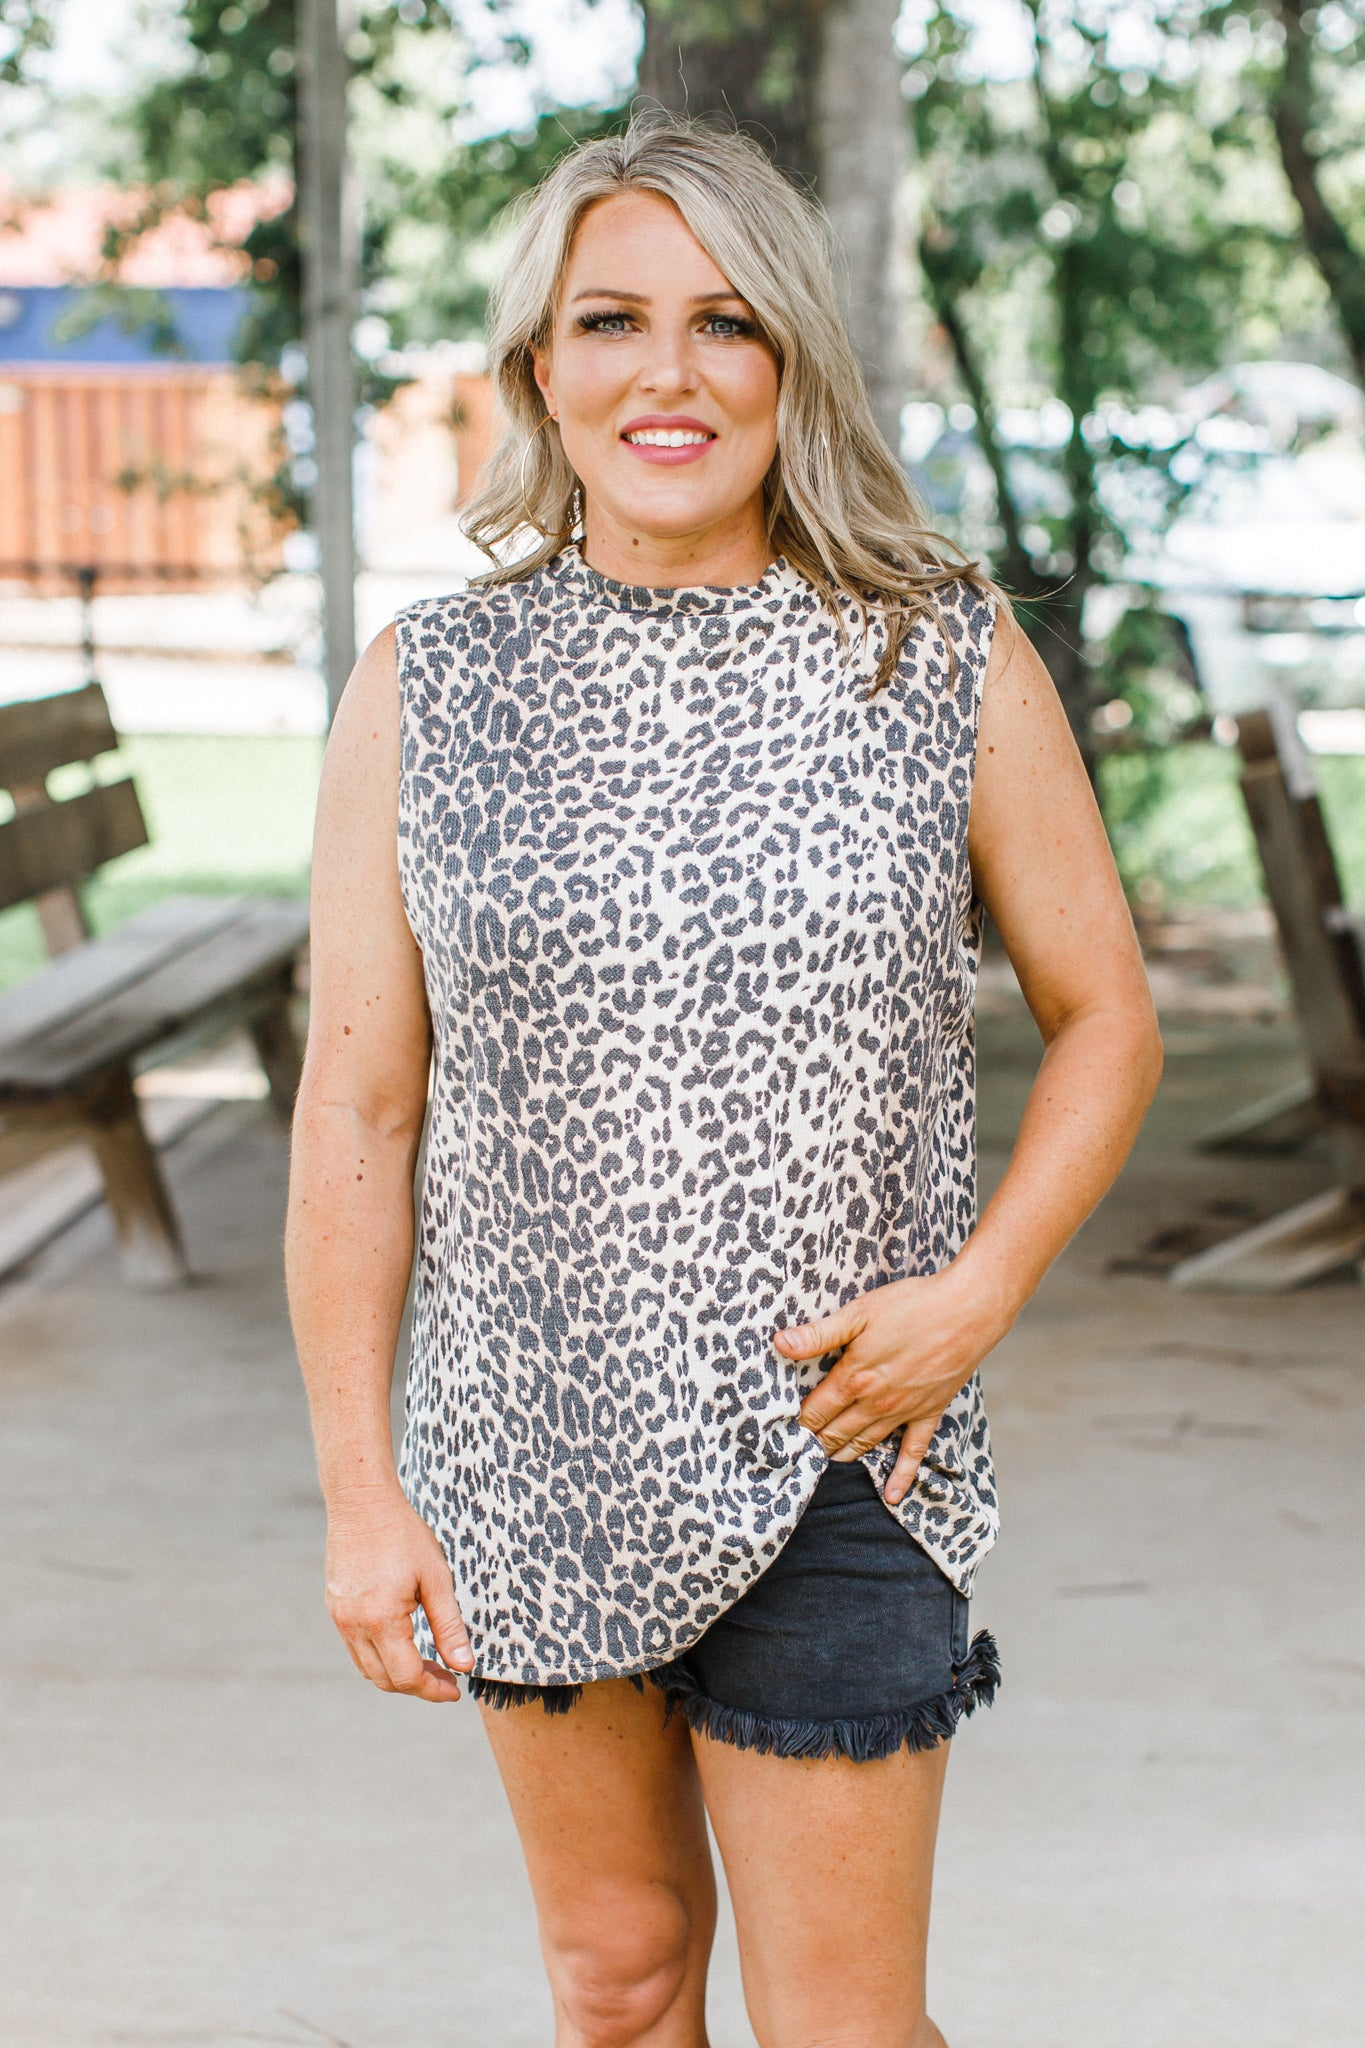 Julie Leopard Top (S-XL)